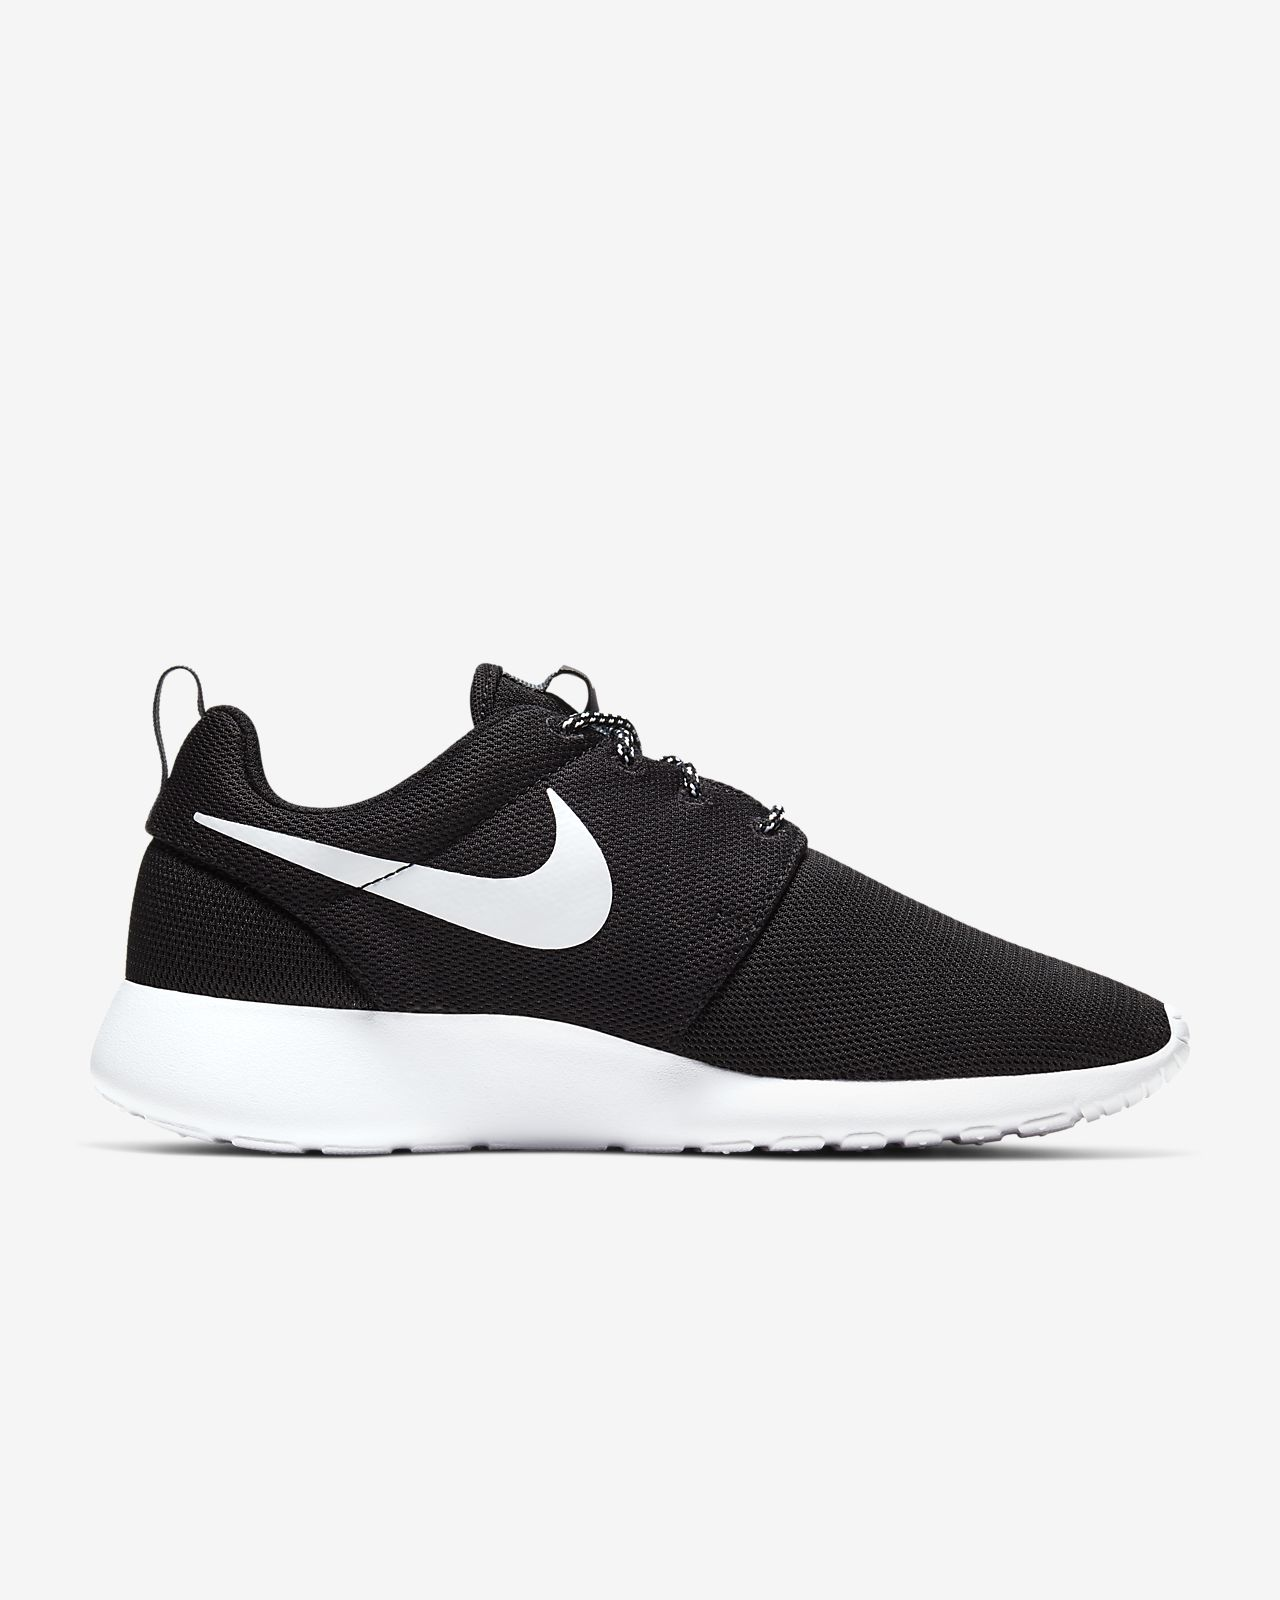 buy online e8bf5 1cc04 ... Nike Roshe One Womens Shoe